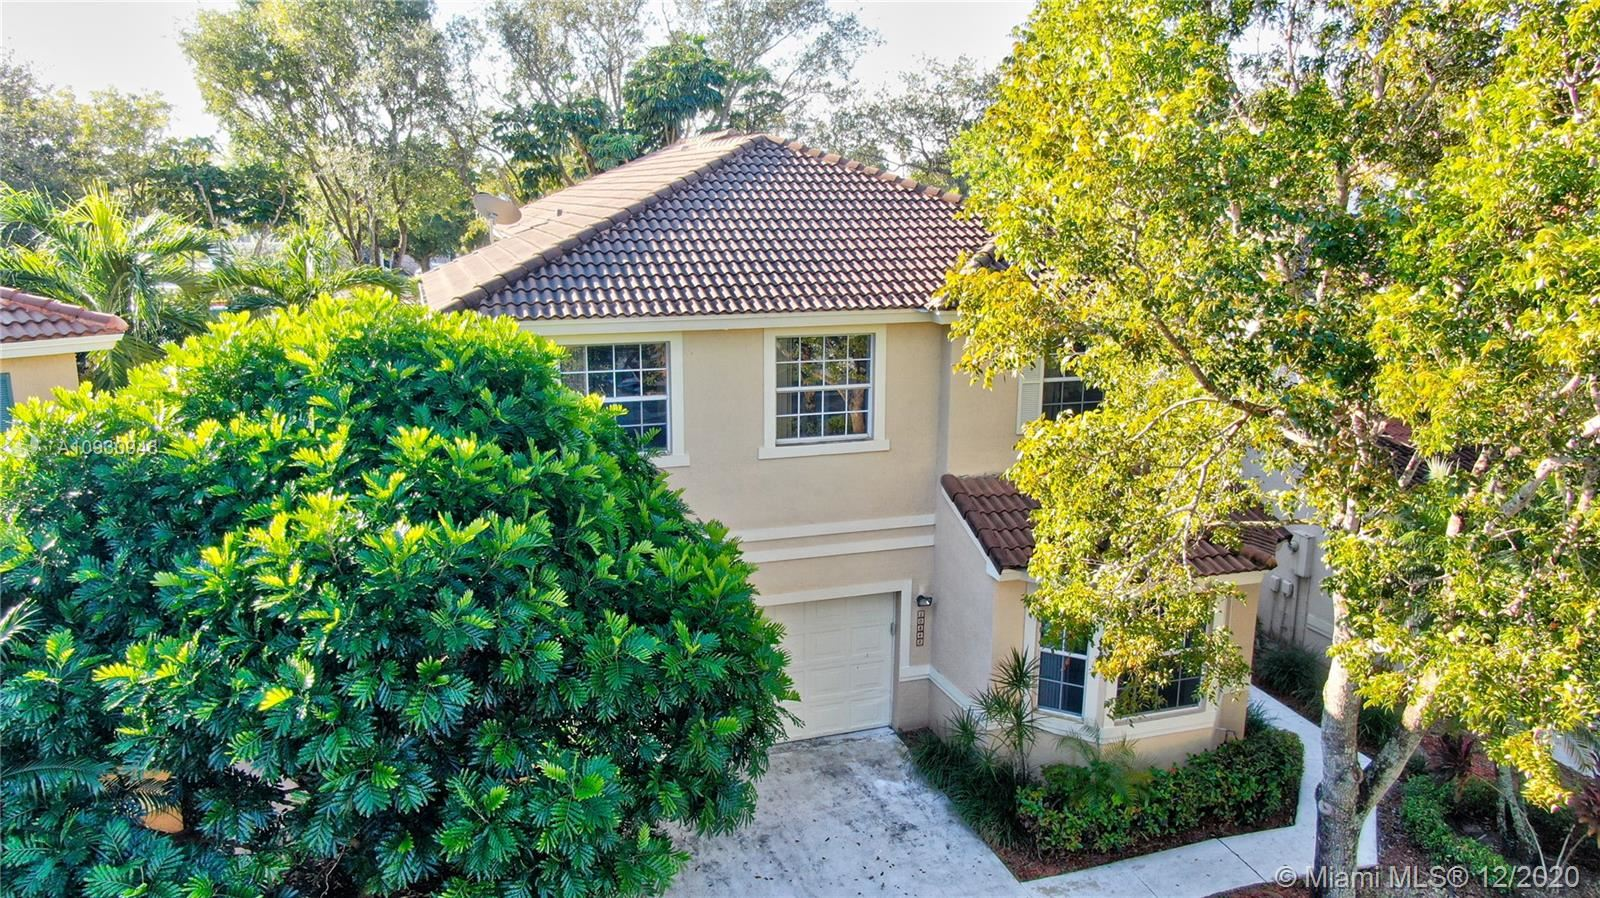 10849 NW 46th Dr, Coral Springs, FL 33076 - #: A10930943